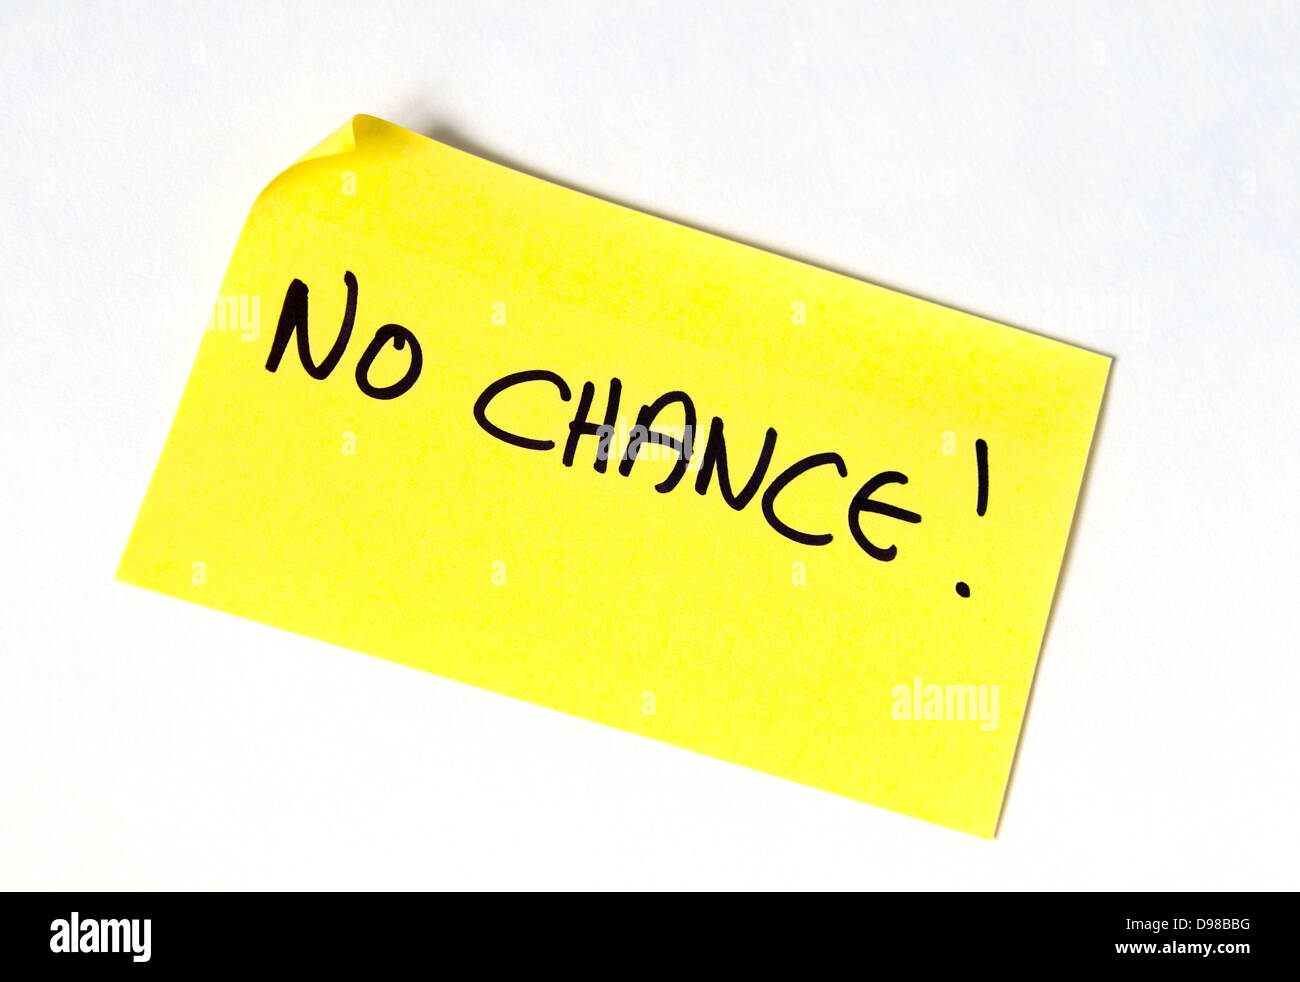 No Chance! Written in capital letters on a yellow post it note - Stock Image